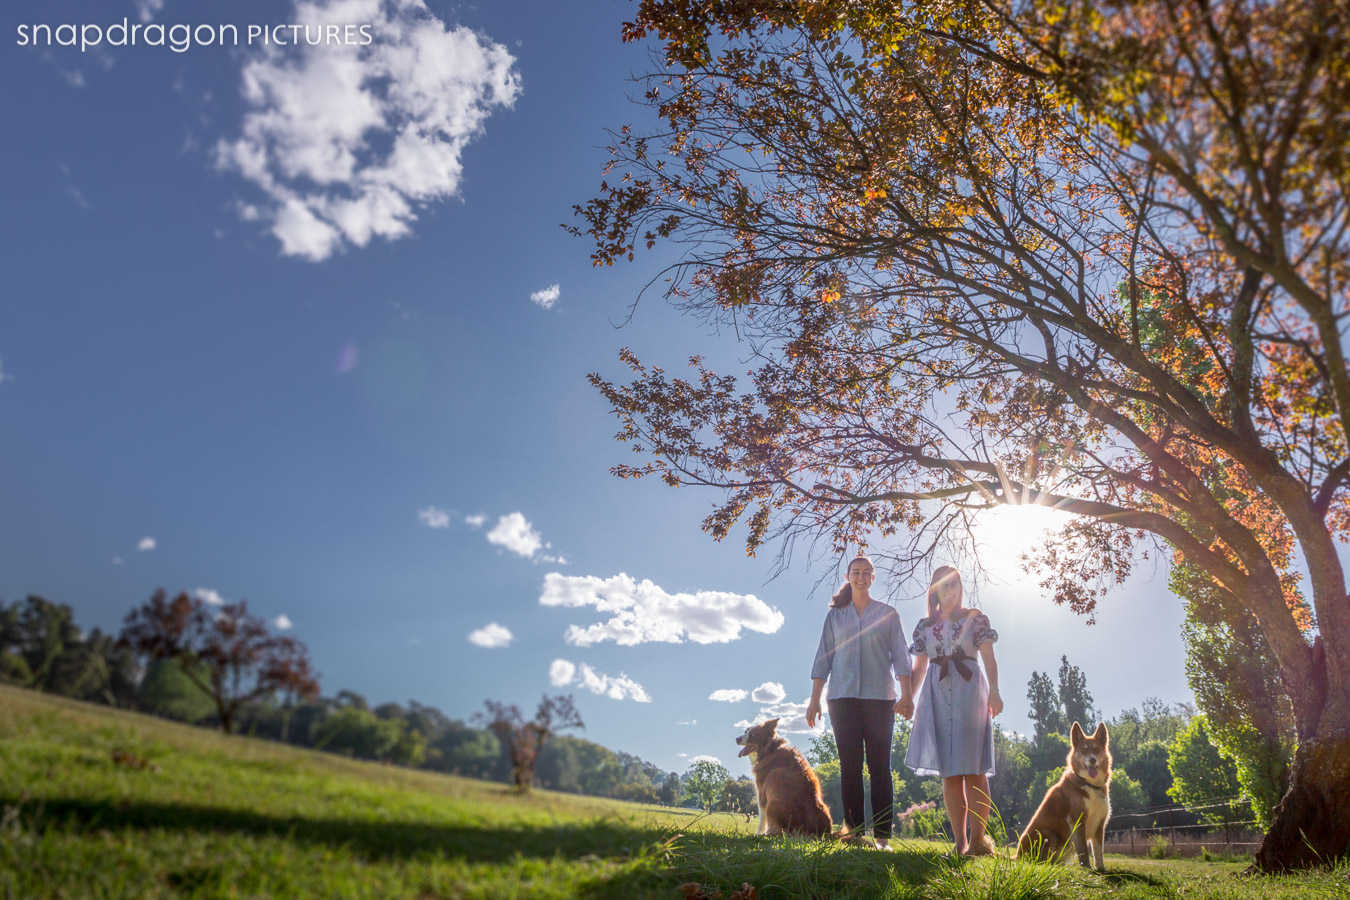 Canine, Couple, Dog, Dogs, Engagement, Family, Fine Art, Johannesburg, Leanne Russell Williams, Lifestyle, Pawtrait, Pawtraits, Pet, Pets, Photographer, Photographers, Photography, Portrait, Portraits, Snapdragon Pictures, South Africa